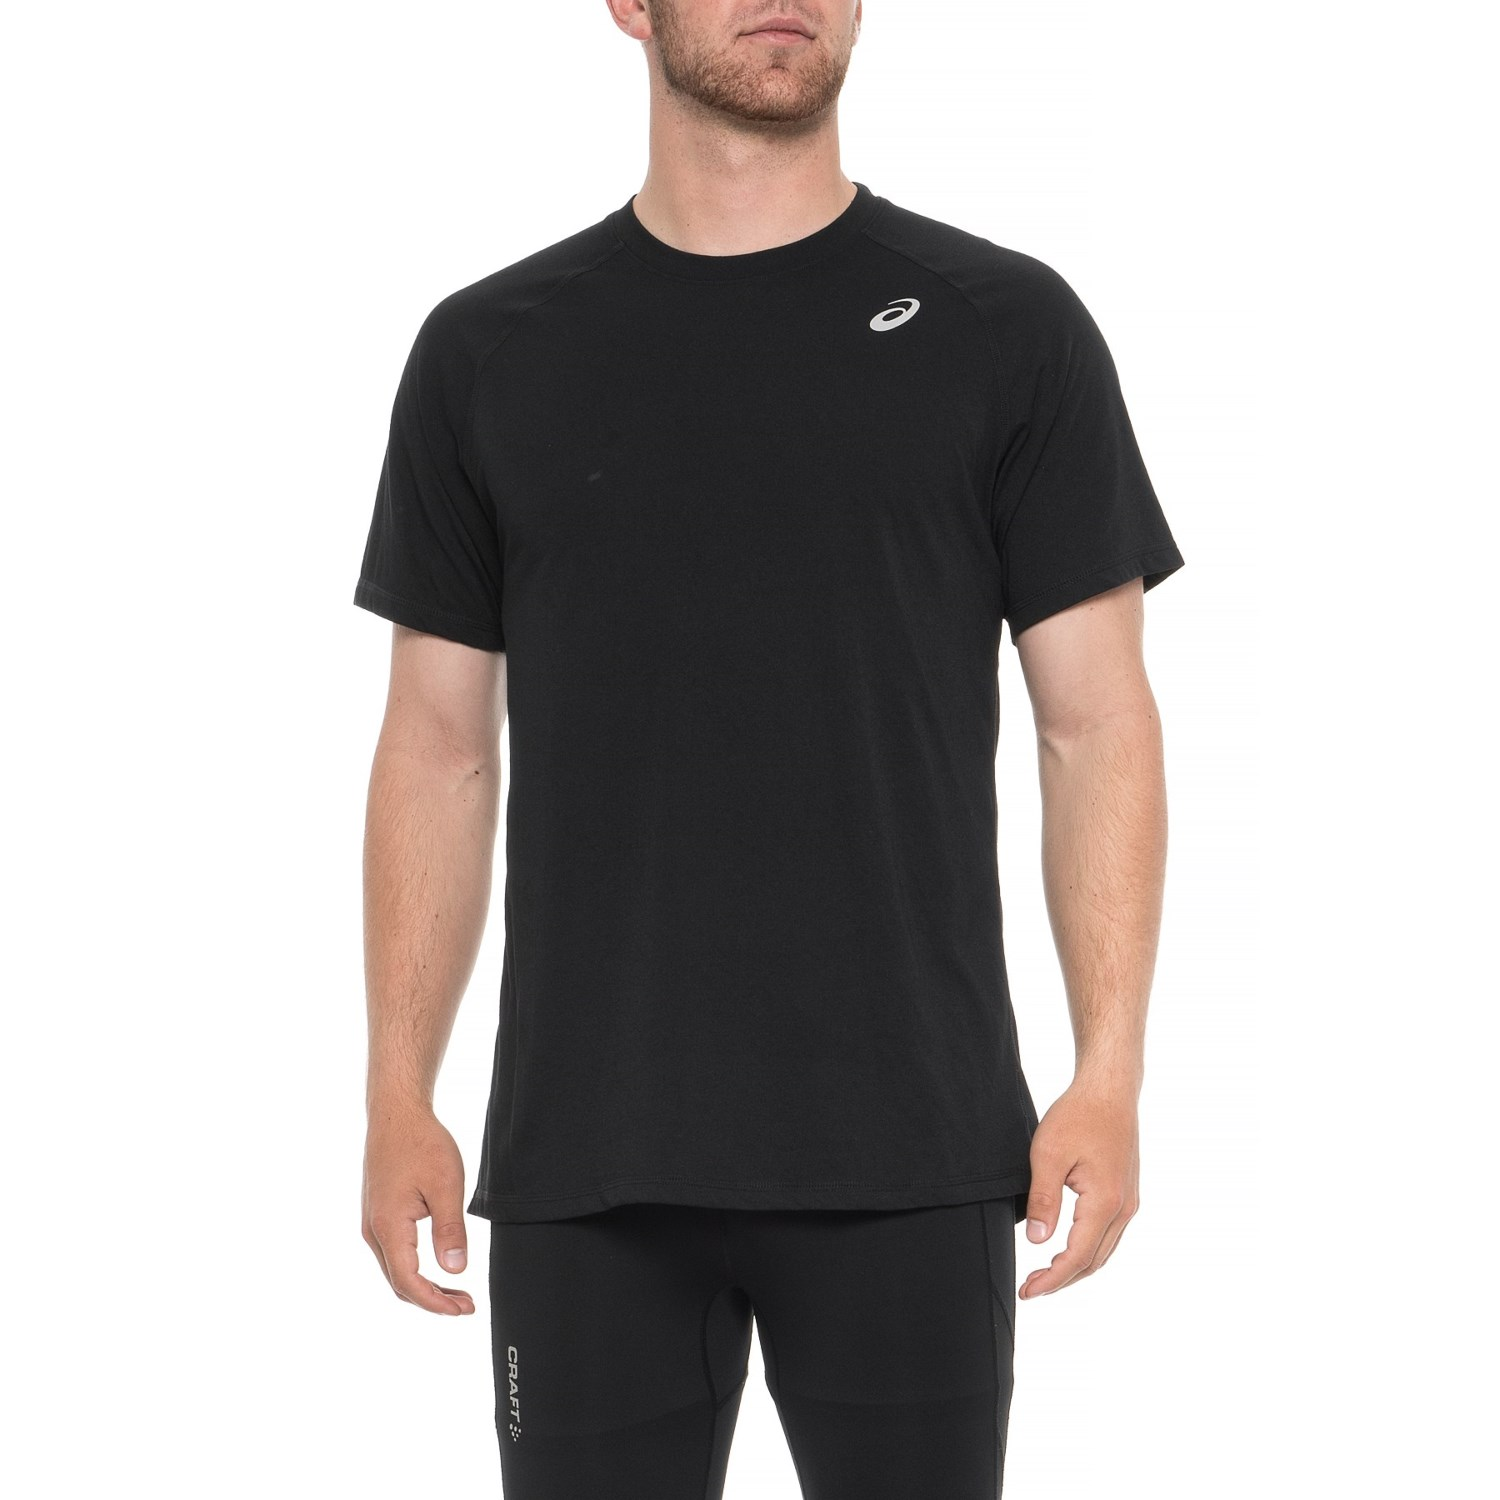 92cb37c215 ASICS Team Essential Training T-Shirt - Short Sleeve (For Men)